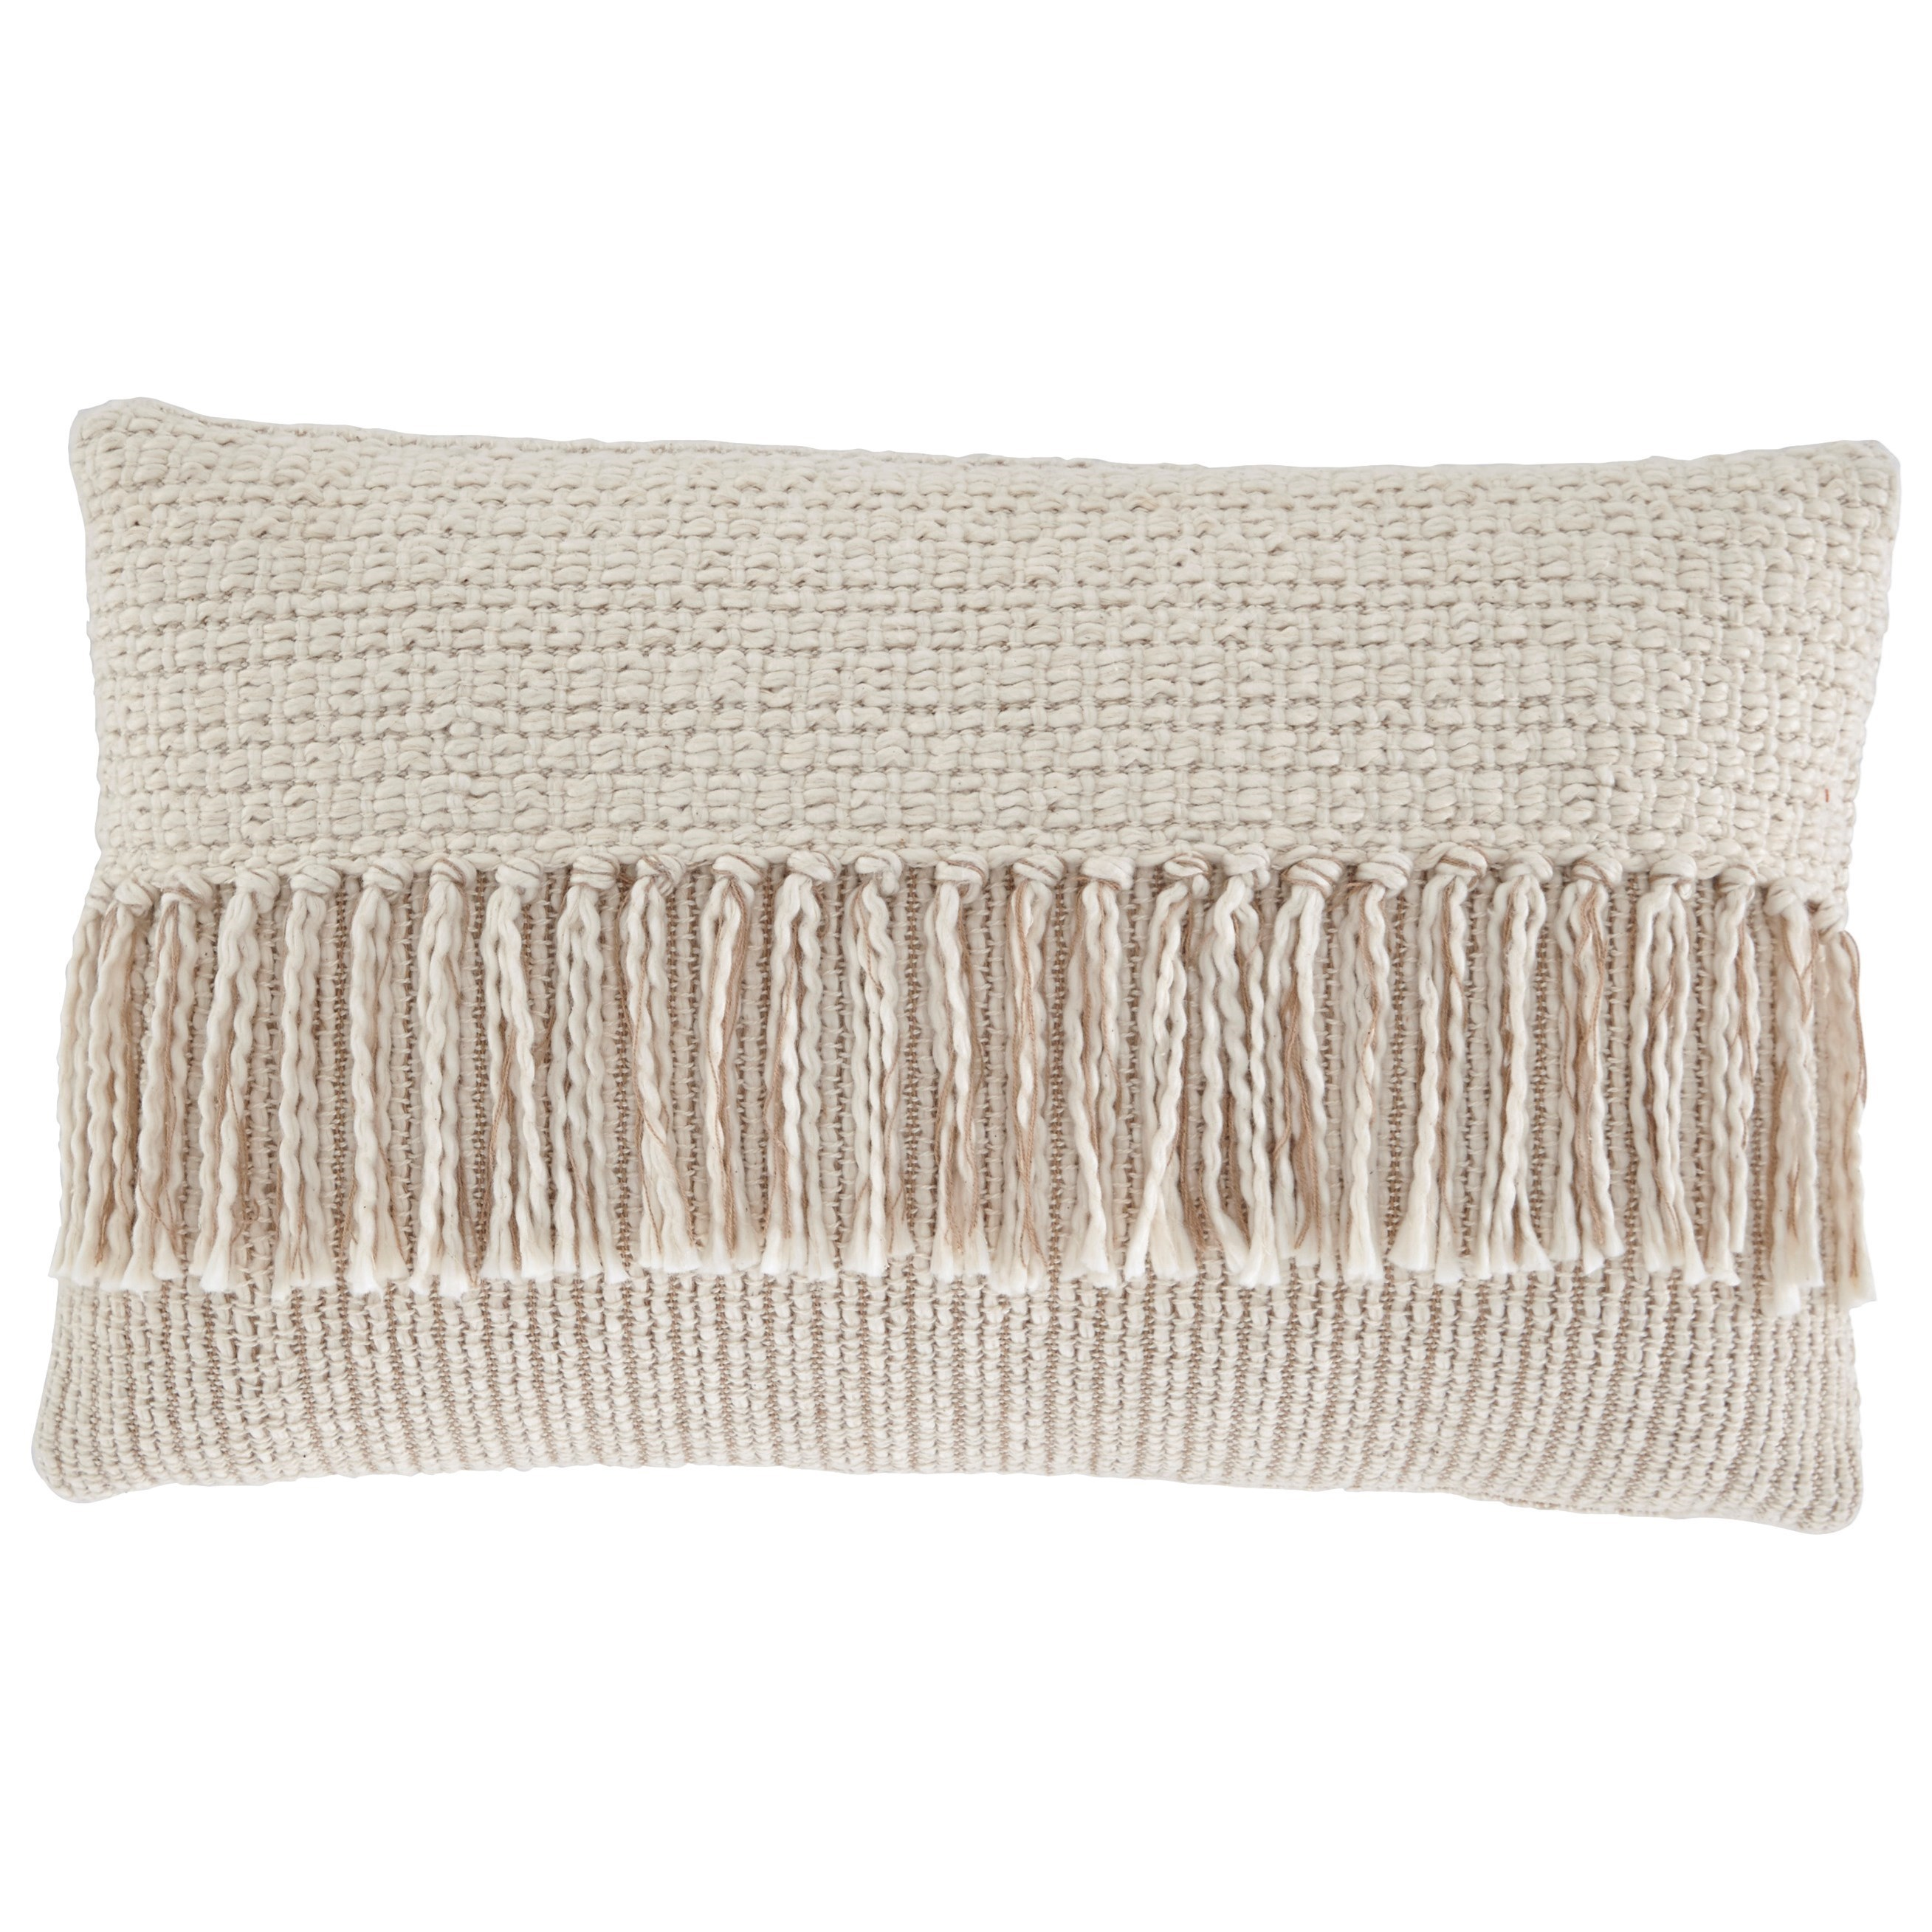 Pillows Medea Tan/Cream Pillow by Signature Design by Ashley at Northeast Factory Direct